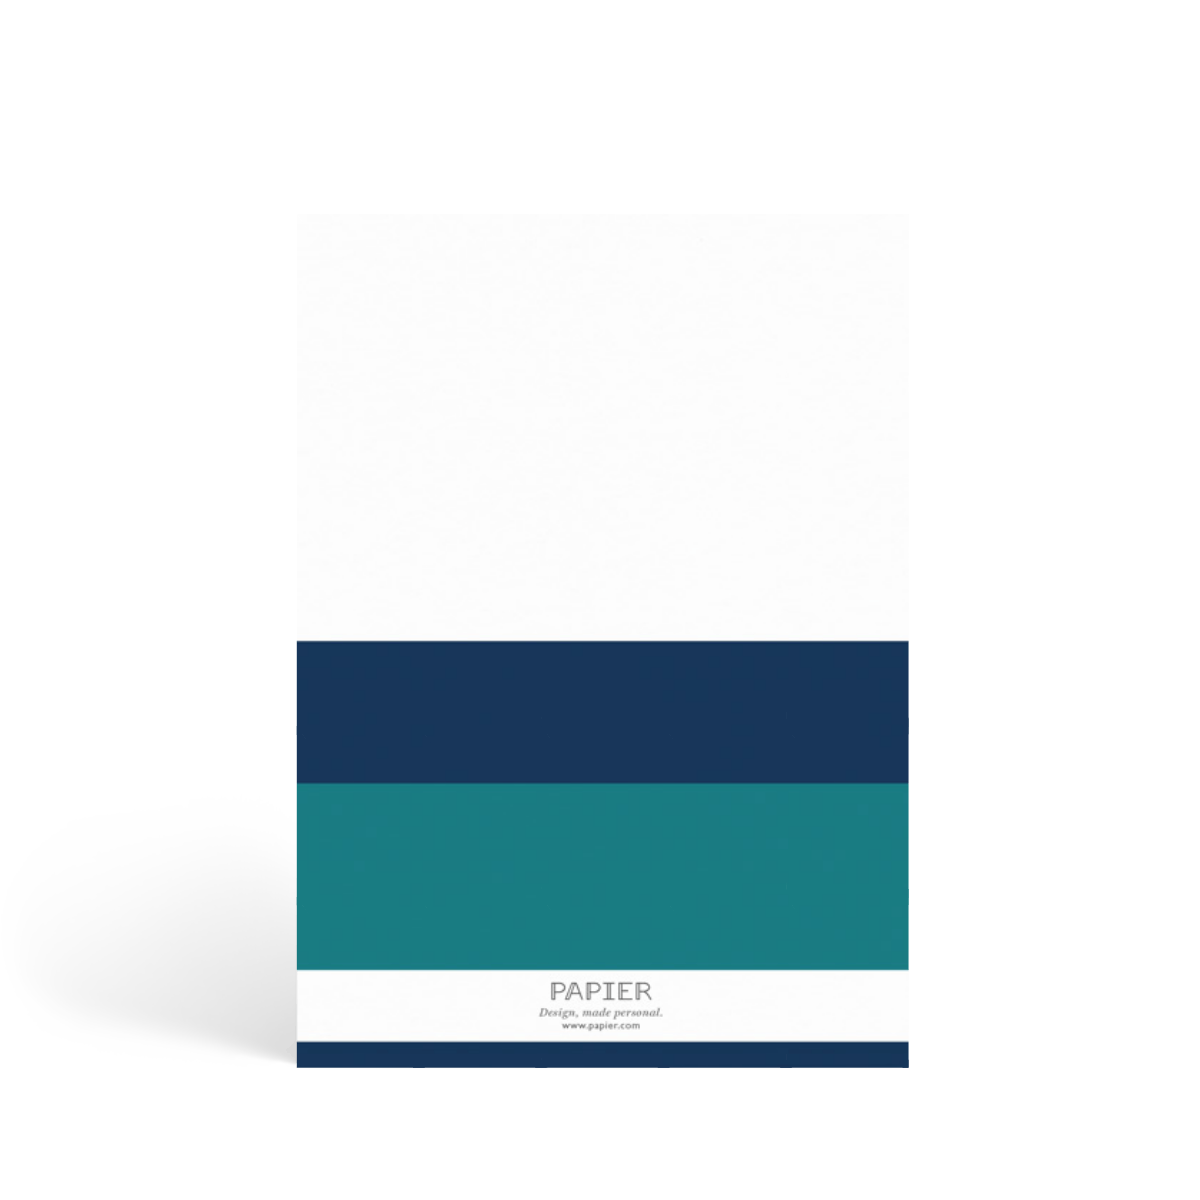 Https%3a%2f%2fwww.papier.com%2fproduct image%2f64407%2f5%2fstriped colourblock navy 15122 arriere 1548967346.png?ixlib=rb 1.1